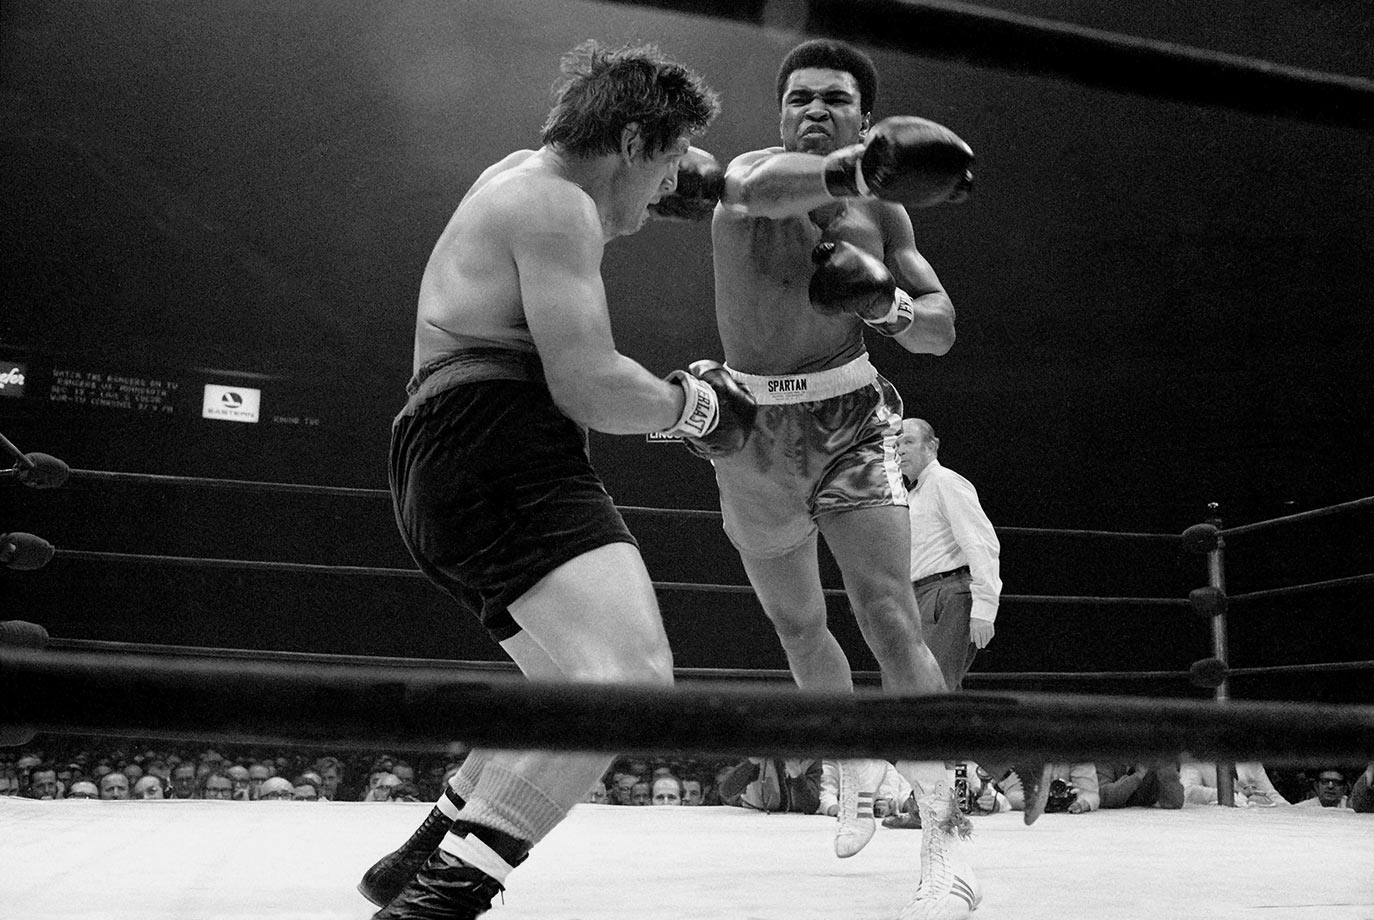 Despite Ali's long layoff, his comeback campaign would include no easy tune-up bouts. He stopped Quarry in three rounds on Oct. 26, 1970, then, just six weeks later — an unthinkably short interlude by today's standards — took on Argentine contender Oscar Bonavena in Madison Square Garden. Here, Ali fires a right at the rugged and awkward Bonavena, who took the fight to the former champion all night.